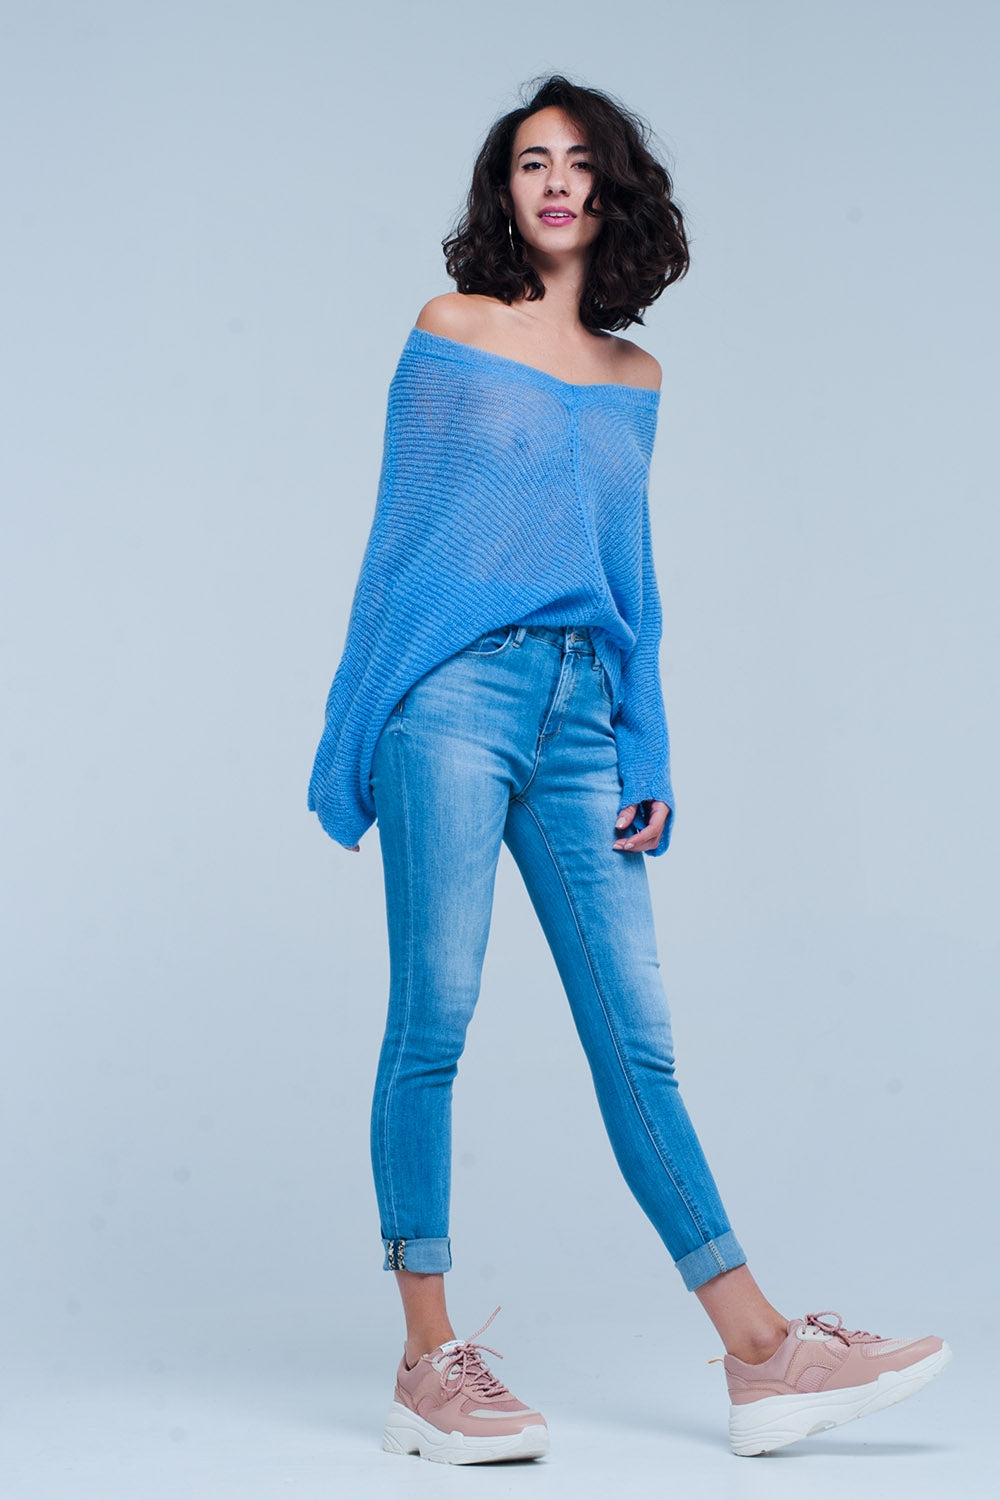 Blue V Neck Knitted Sweater-Women - Apparel - Sweaters - Pull Over-Product Details Fresh blue colored V-neck sweater of very airy acrilyc and soft wool and mohair suited for spring days.-Keyomi-Sook